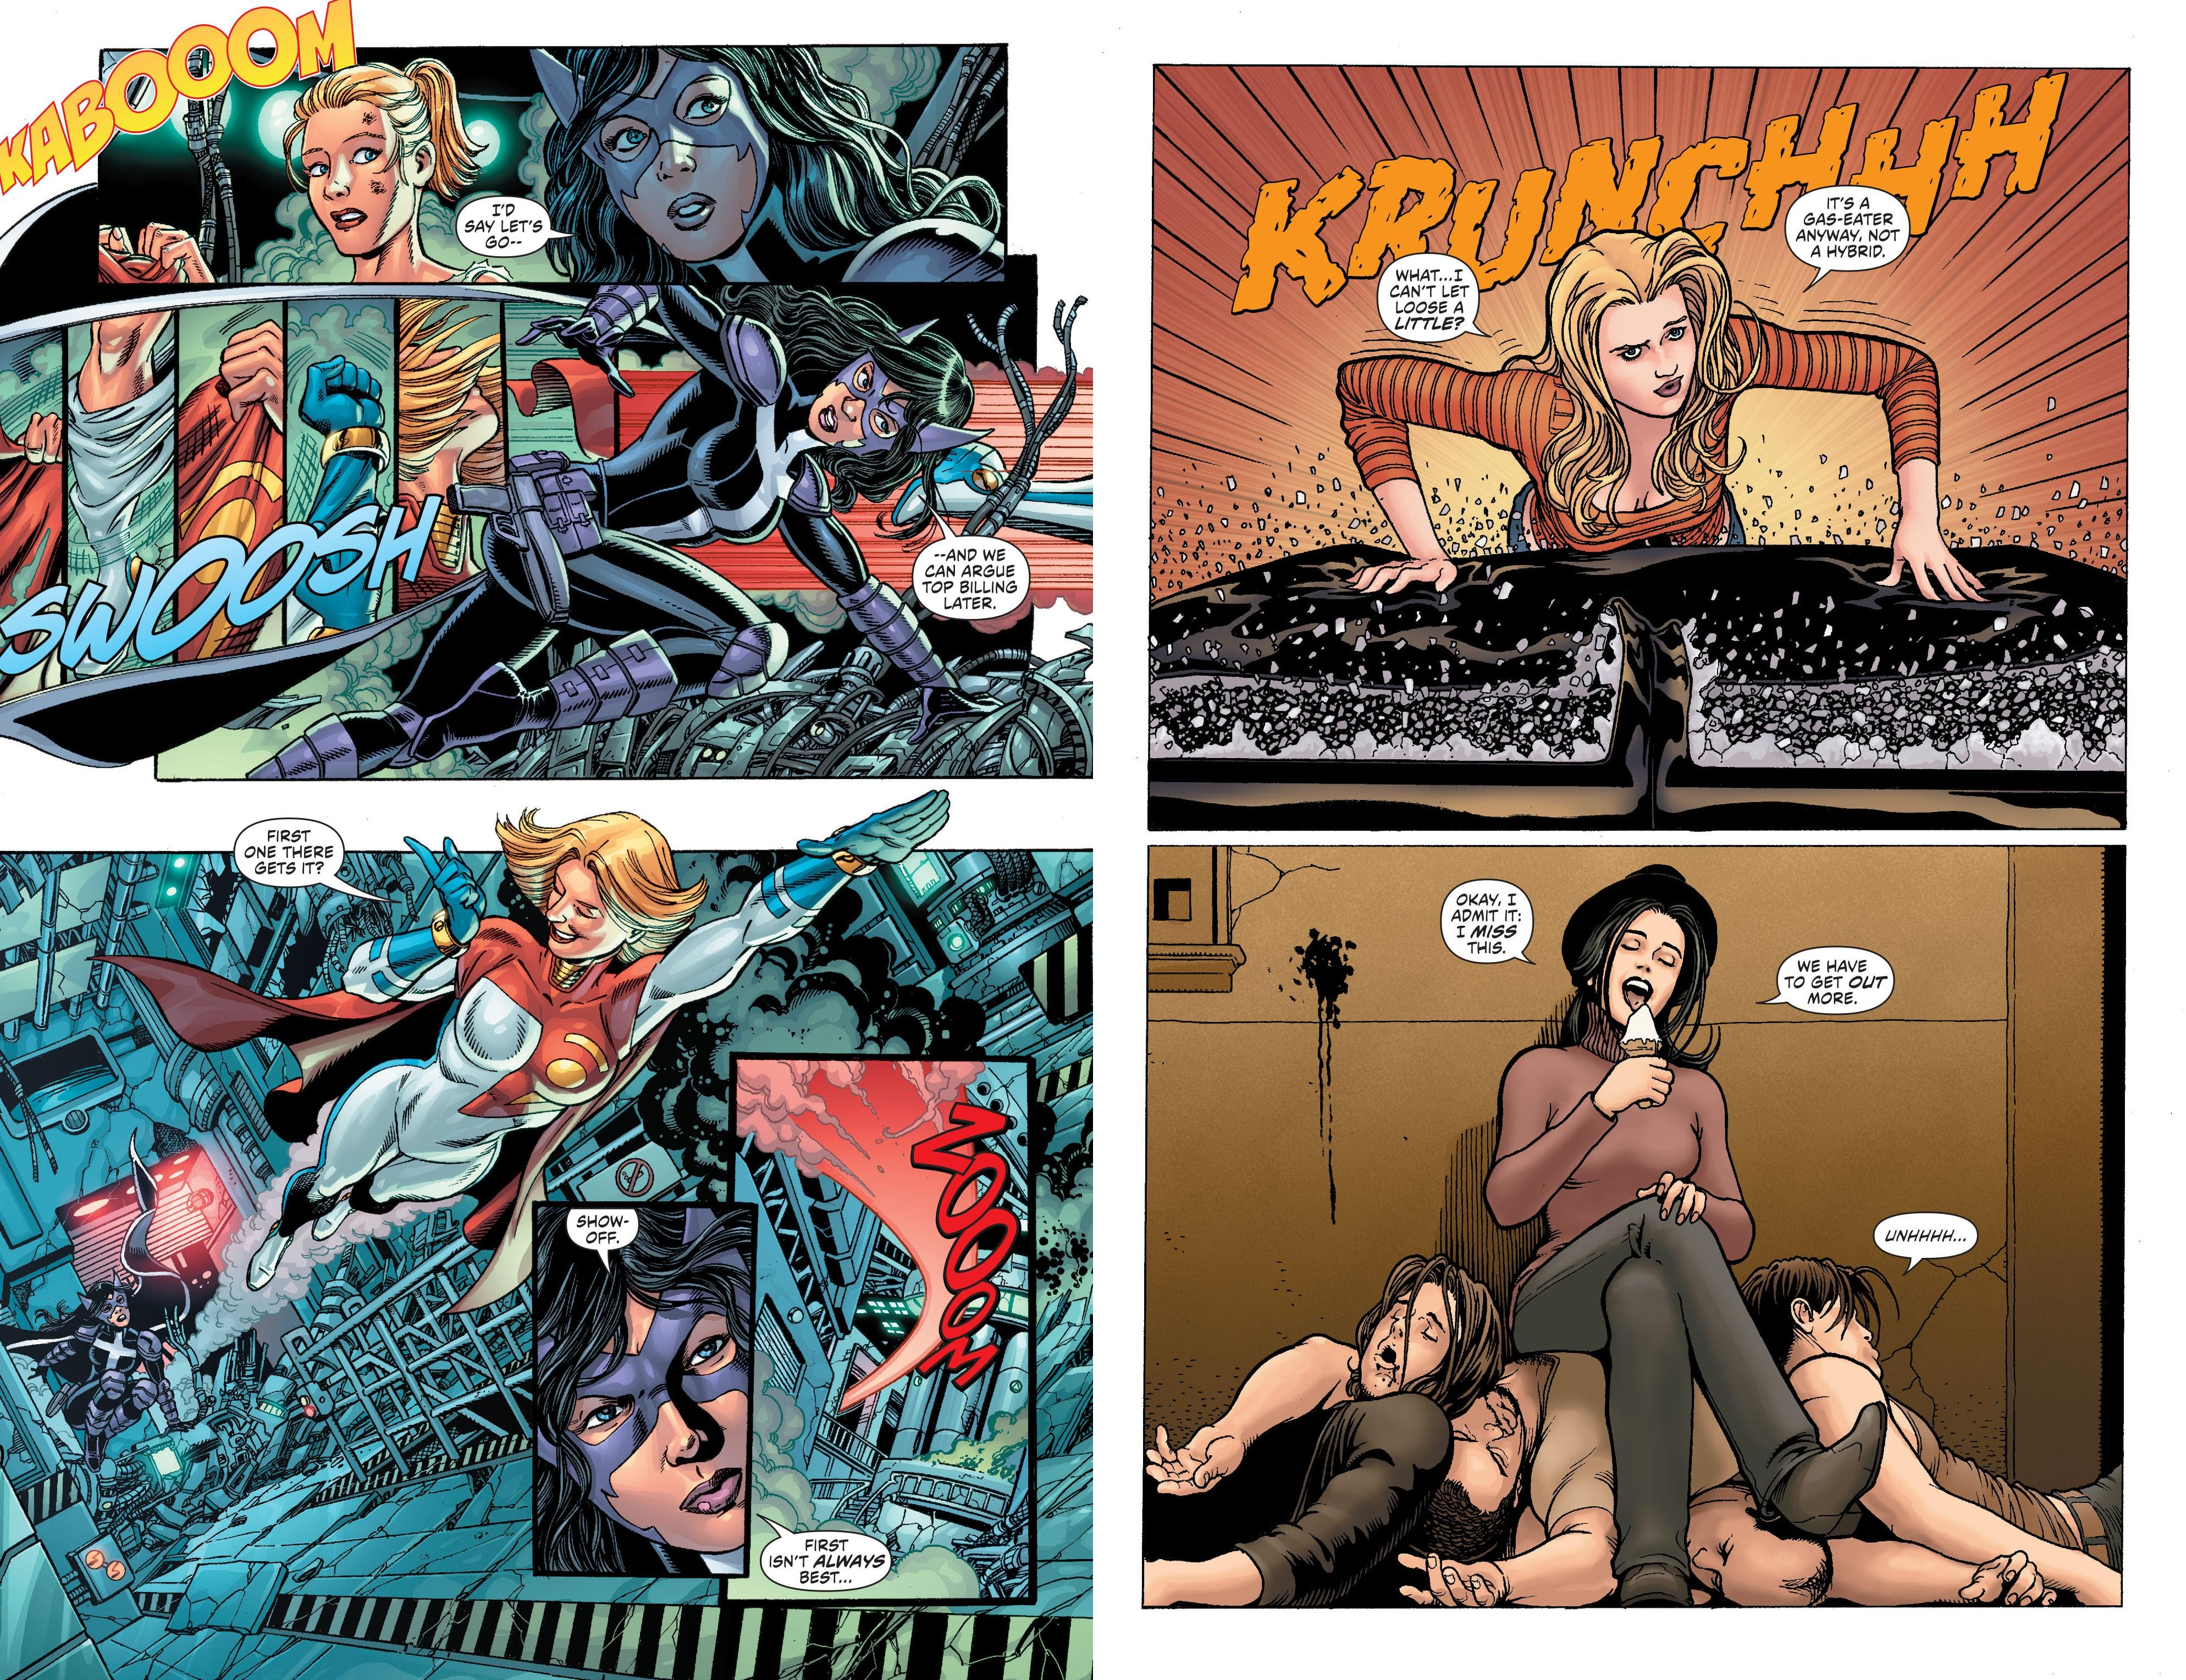 Worlds ' Finest - The Lost Daughters of Earth 2 review